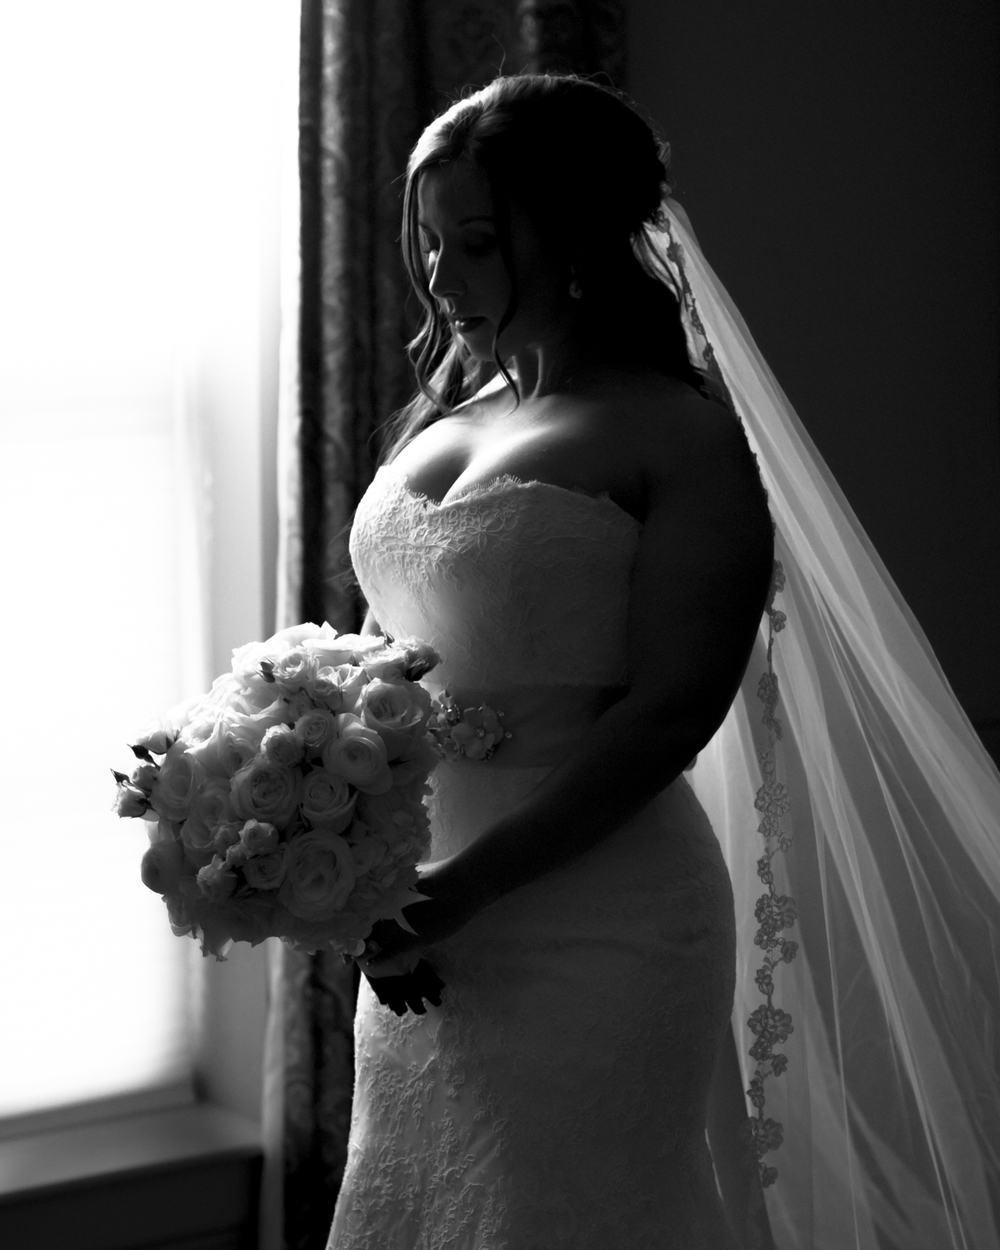 creationstudios-memphis-wedding-photography-0023-B-R-0012-DEG_9127.jpg